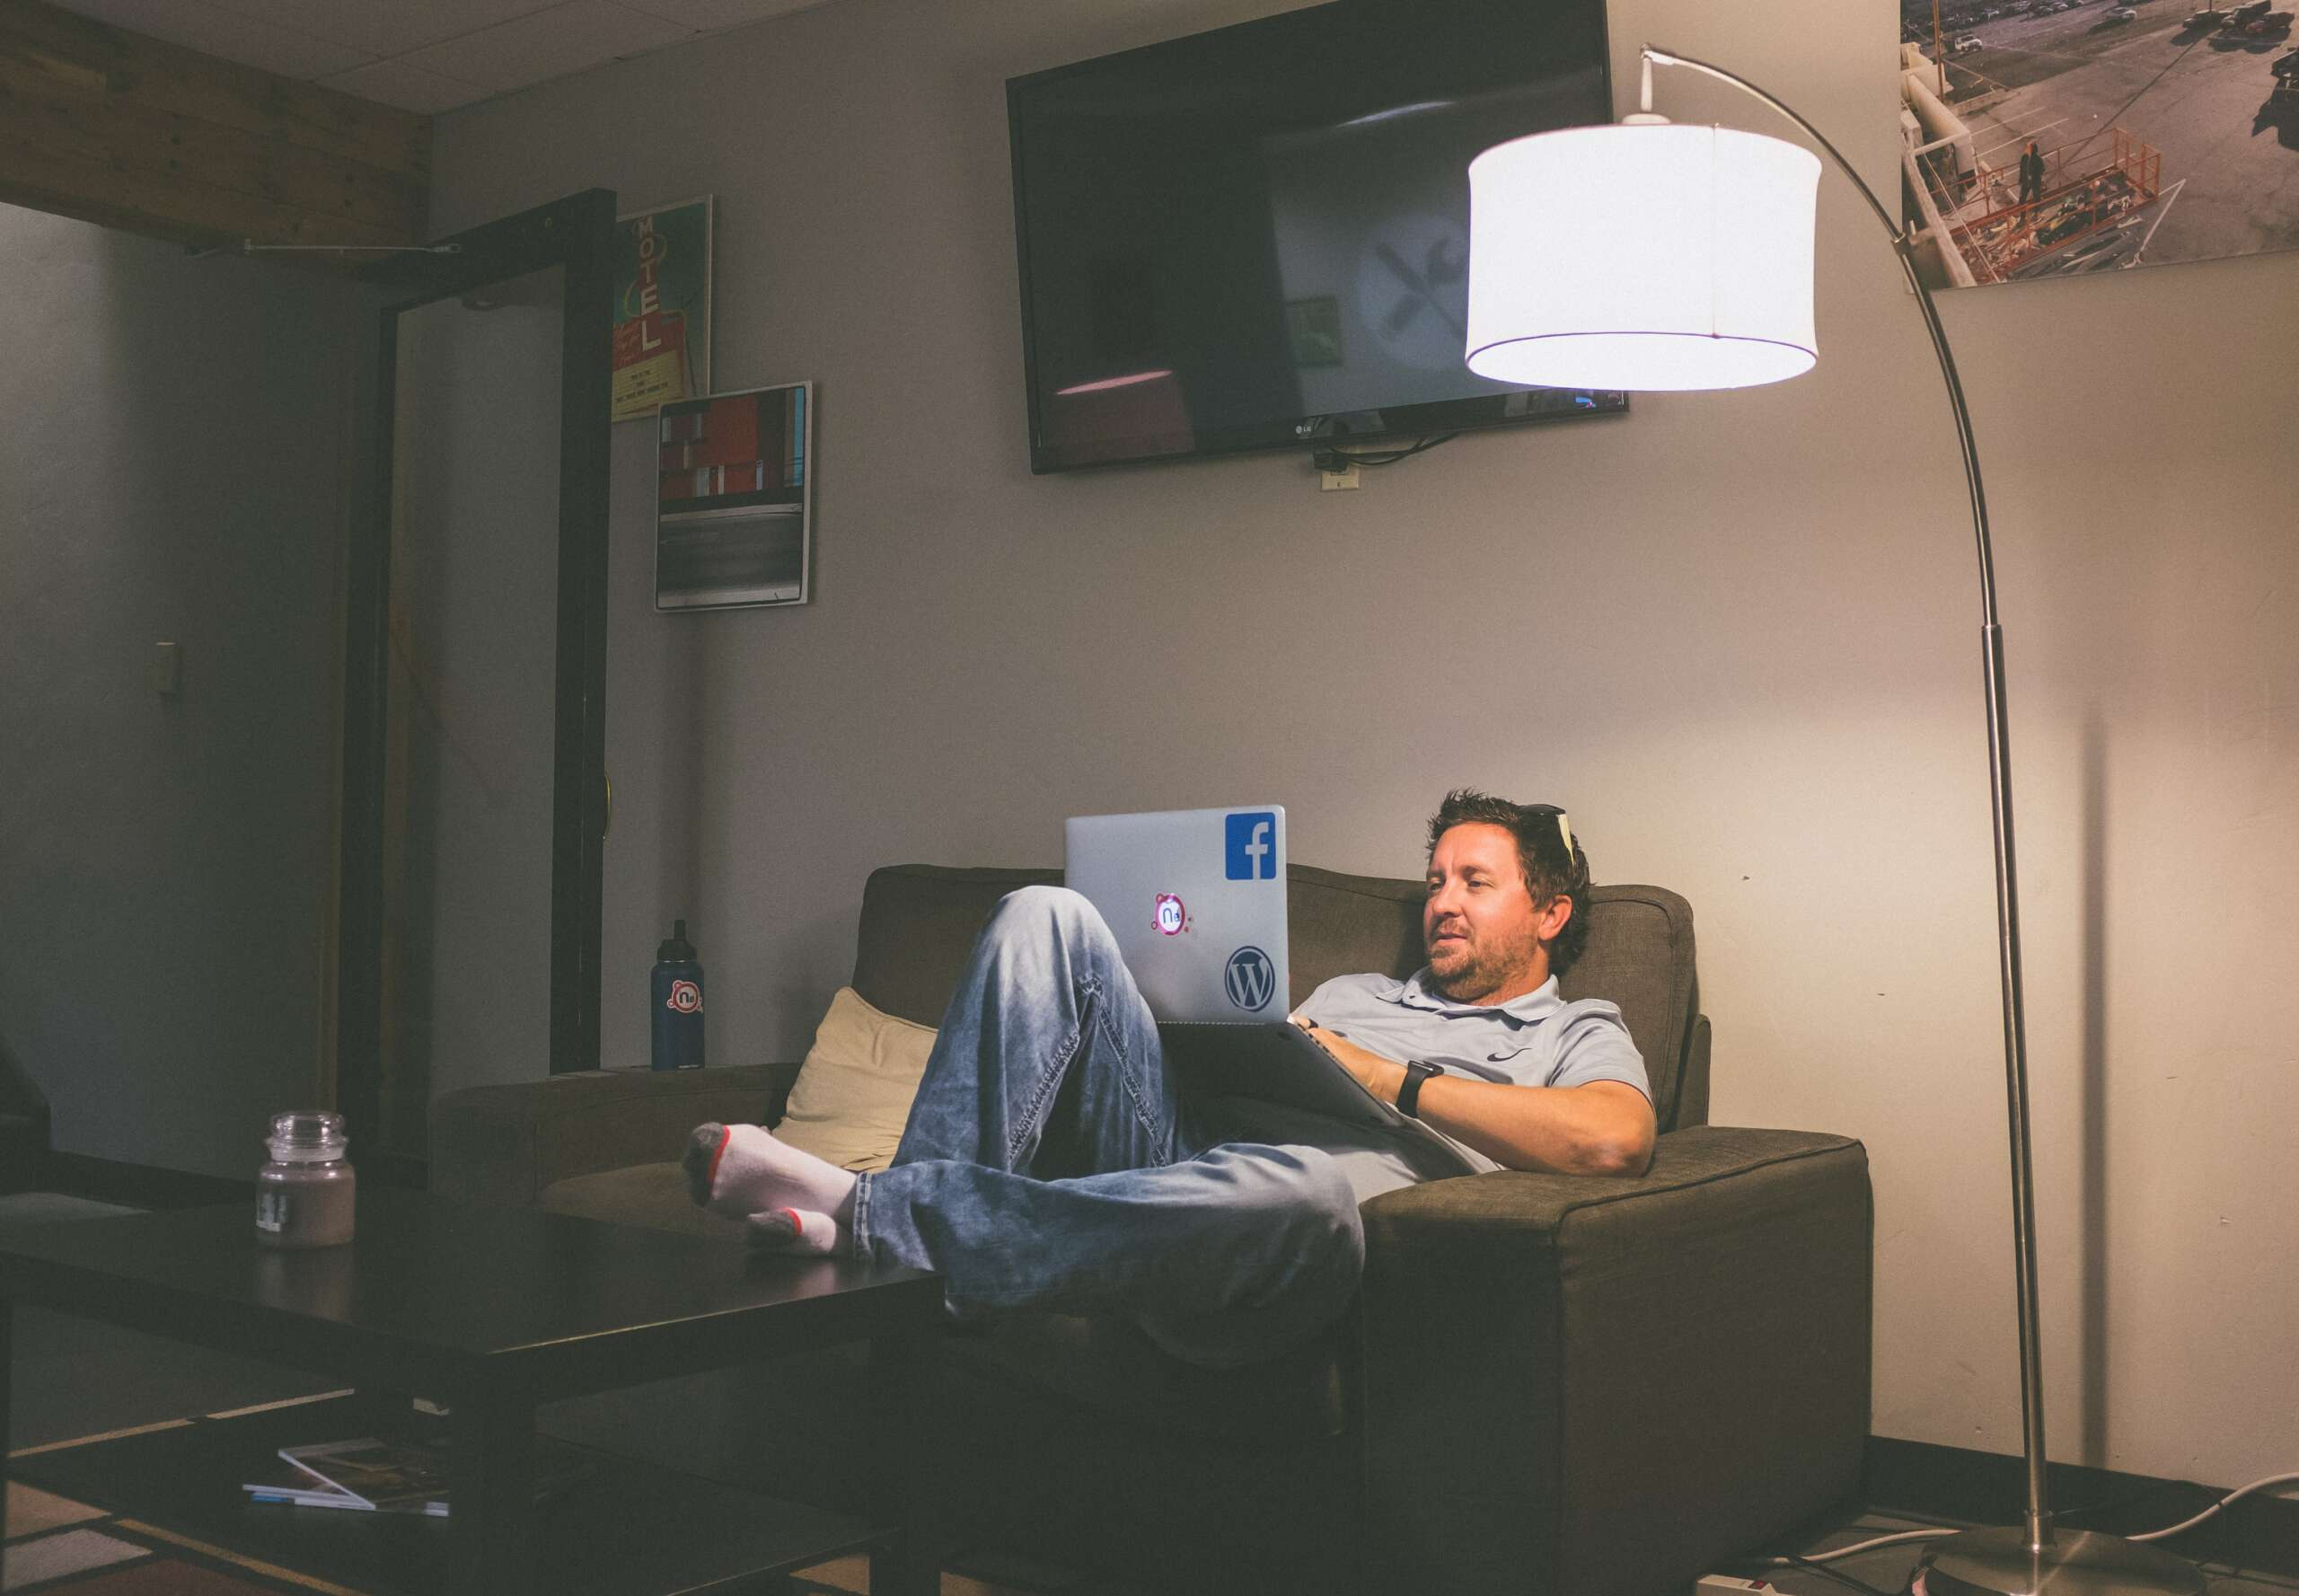 A man works from home on his sofa with a laptop